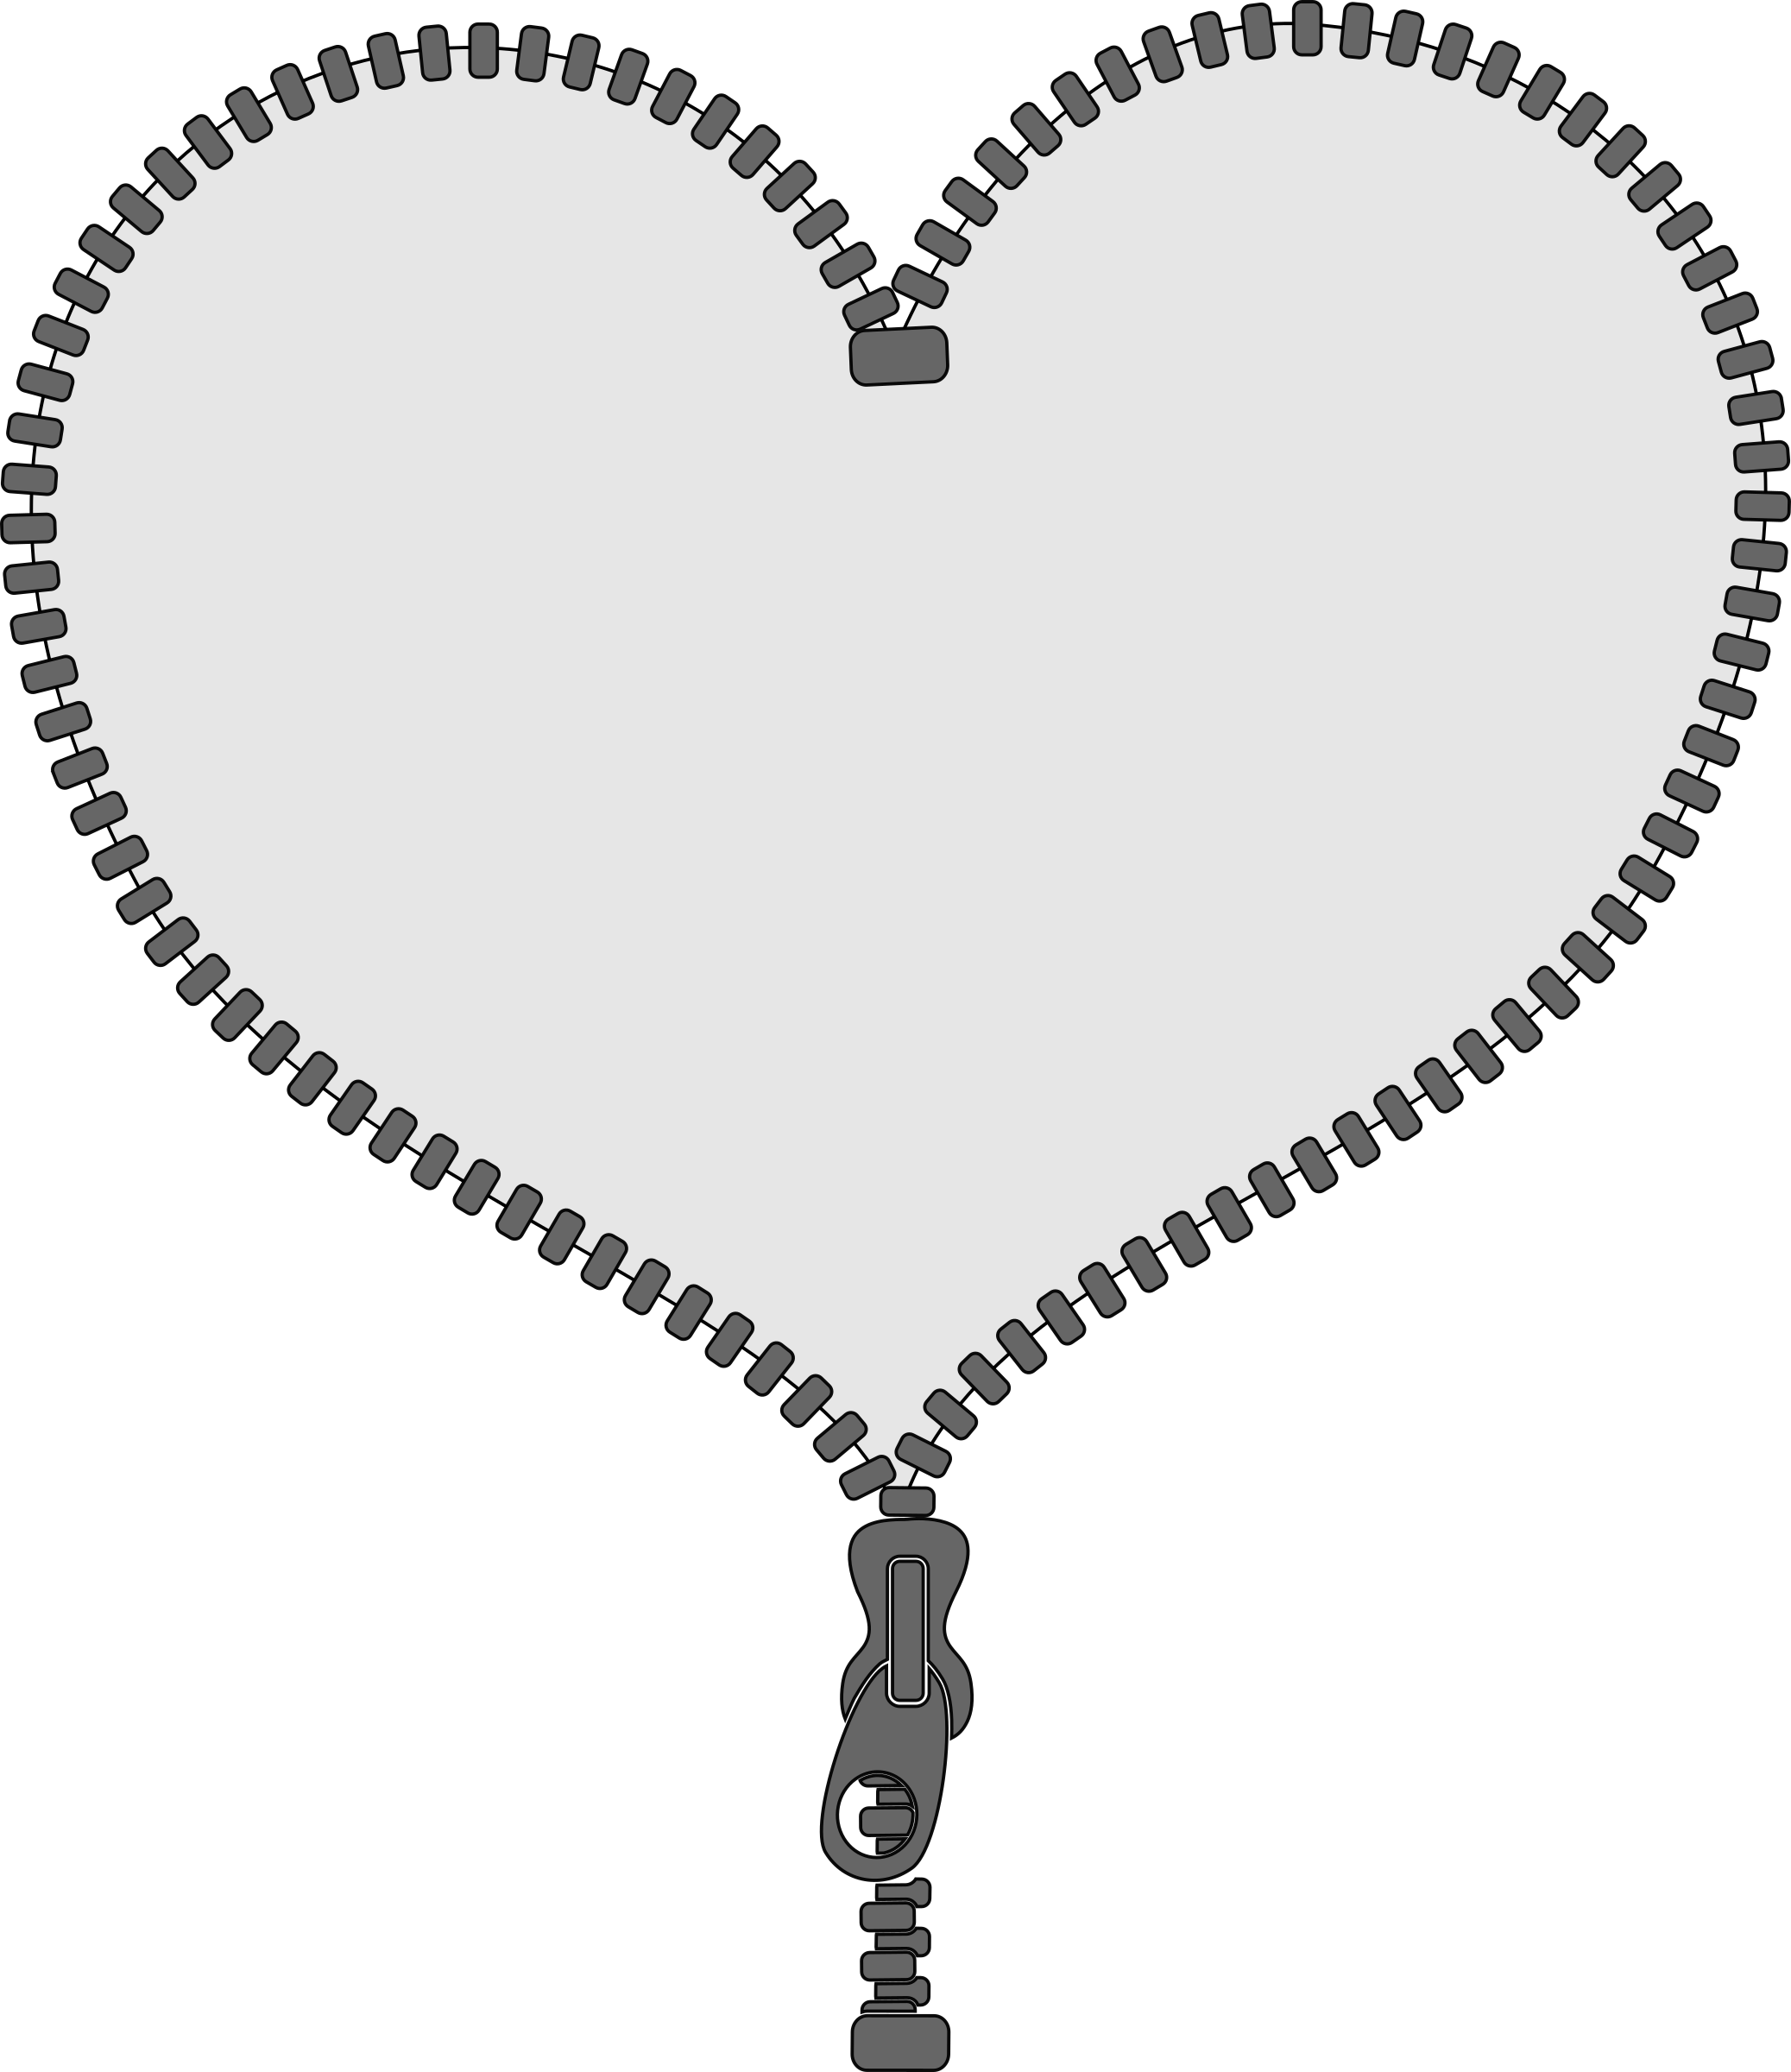 Heart locket clipart freeuse Clipart - Unzip my heart freeuse